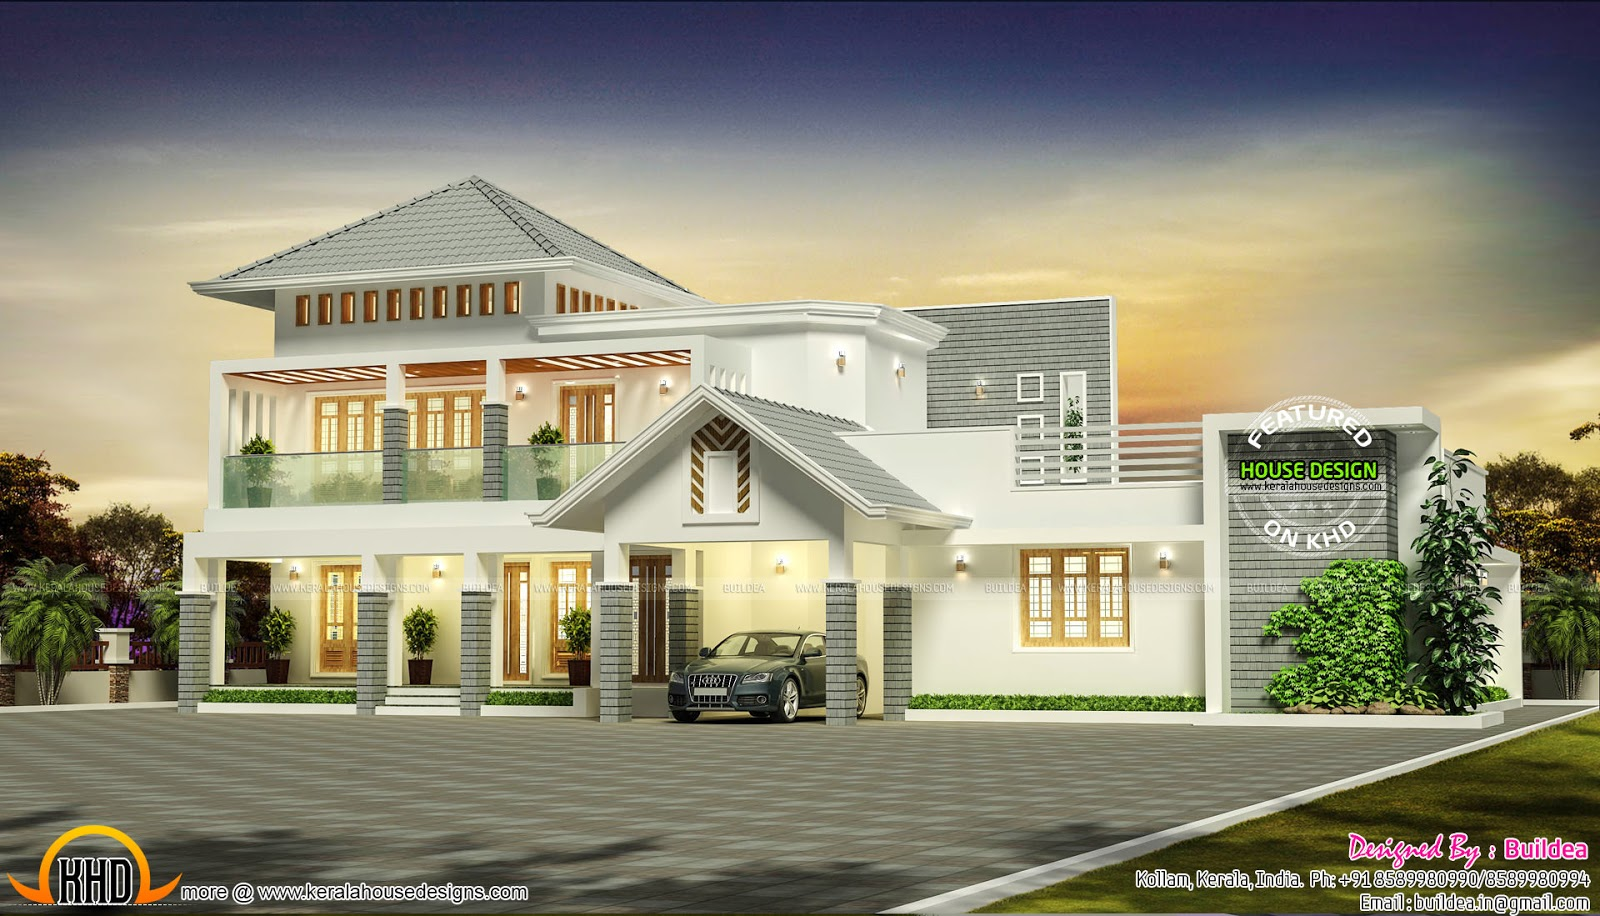 January 2016 - Kerala home design and floor plans on 3600 sq ft house, 1750 sq ft house, 1100 sq ft house, 700 sq ft house, 1 sq ft house, 15000 sq ft house, 11000 sq ft house, 5000 sq ft house, 8500 sq ft house, 2700 sq ft house, 3400 sq ft house, 2000 sq ft house, 2900 sq ft house, 4000 sq ft house, 3200 sq ft house, 4300 sq ft house, 1000 sq ft house, 4200 sq ft house, 1800 sq ft house, 1500 sq ft house,